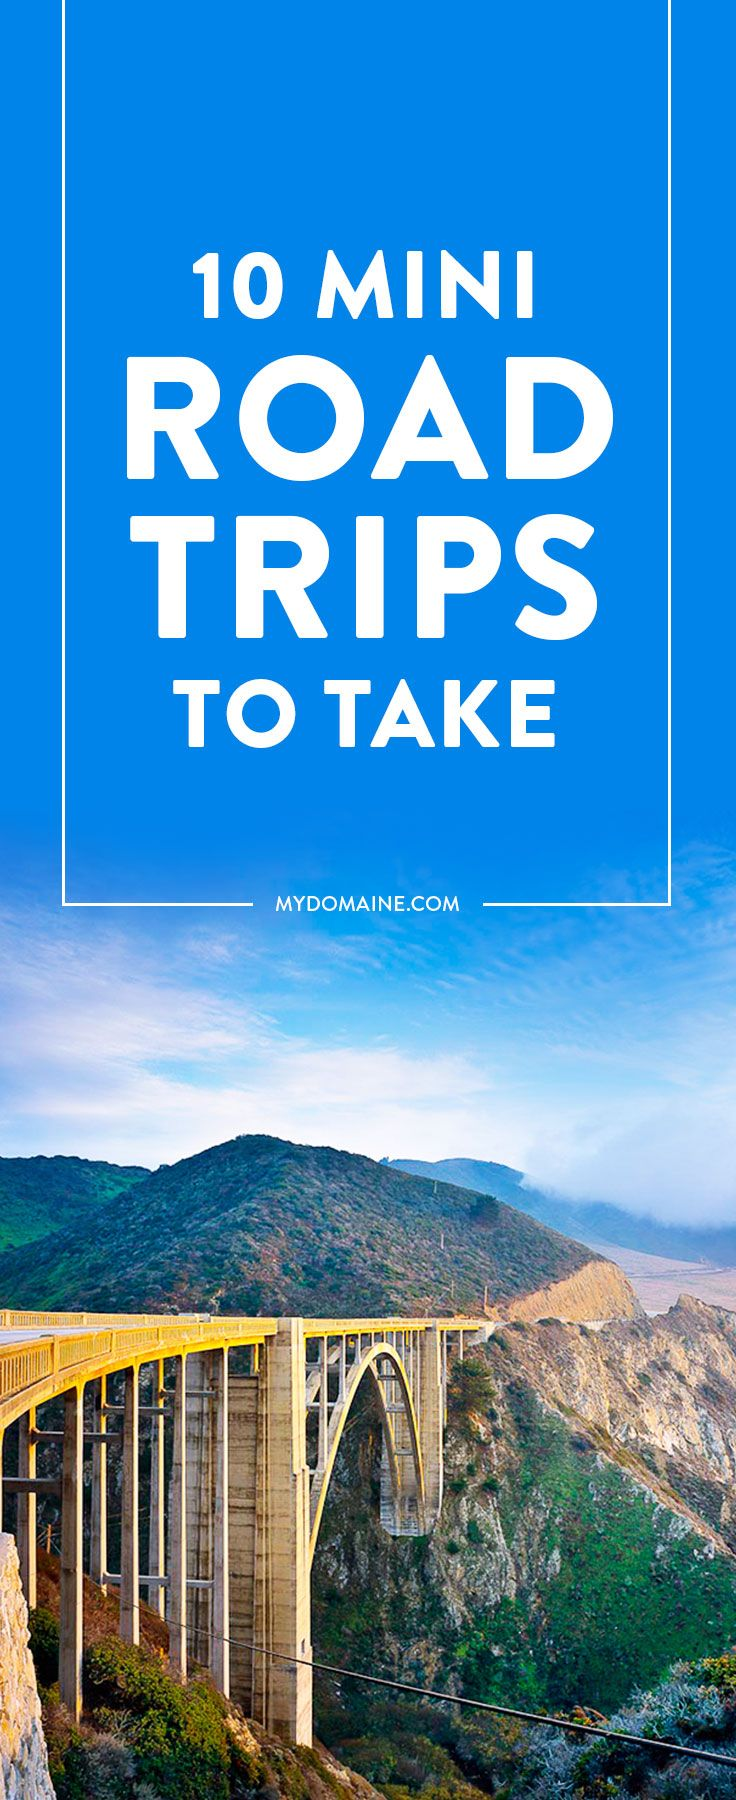 10 Top Mini Road Trips You Can Take This Weekend